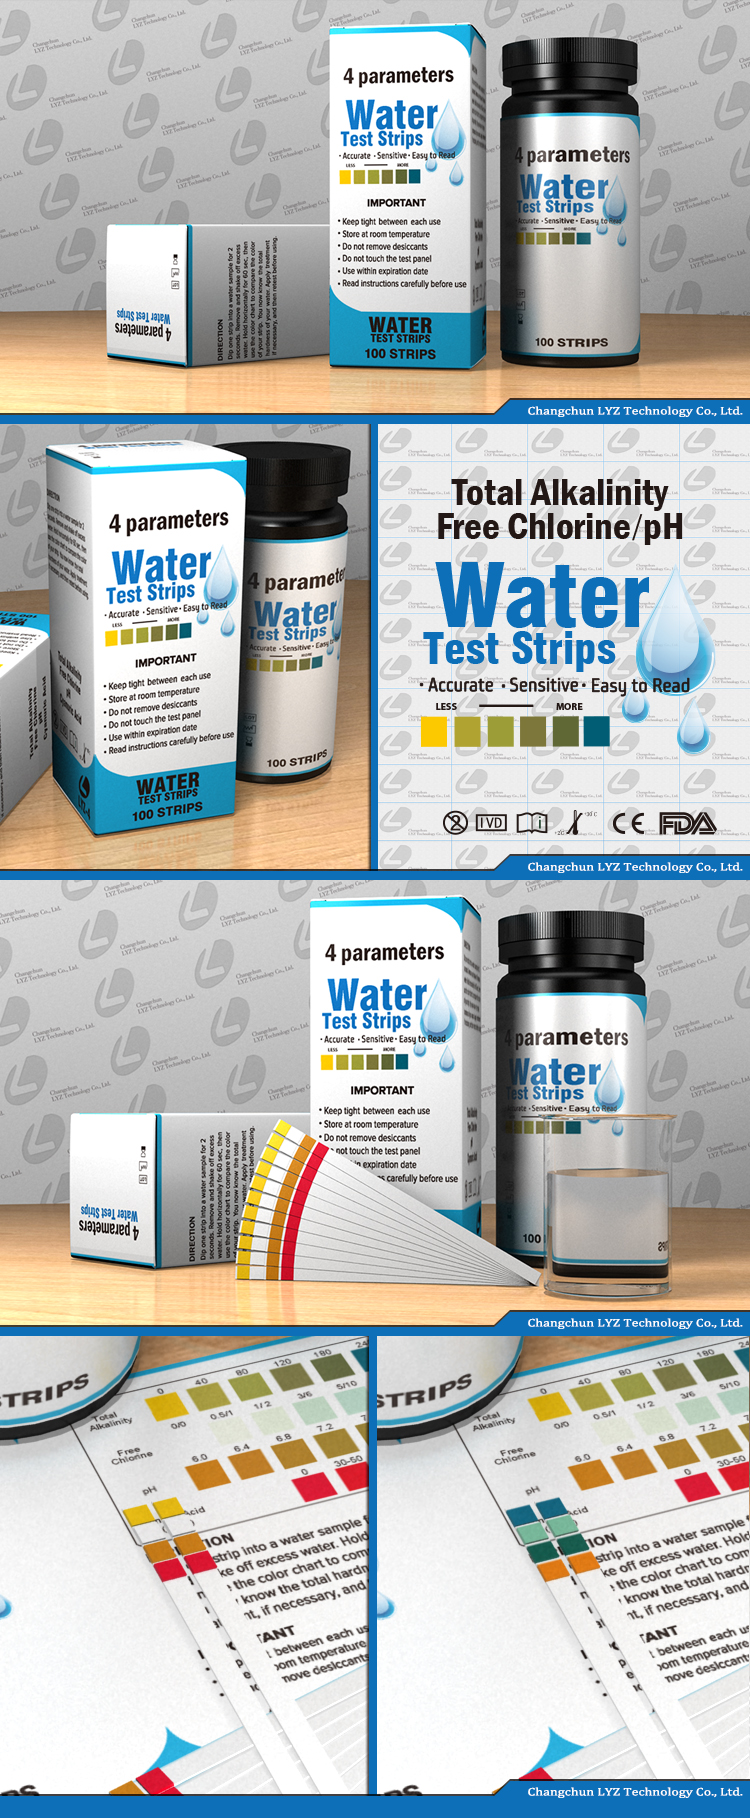 Zwembad Water Ph 4 In 1 Zwembad Water Teststrips Ph Gratis Chloor Broom Totale Alkaliteit Buy Zwembad Teststrips Water Teststrips Zwembad Test Kit Product On